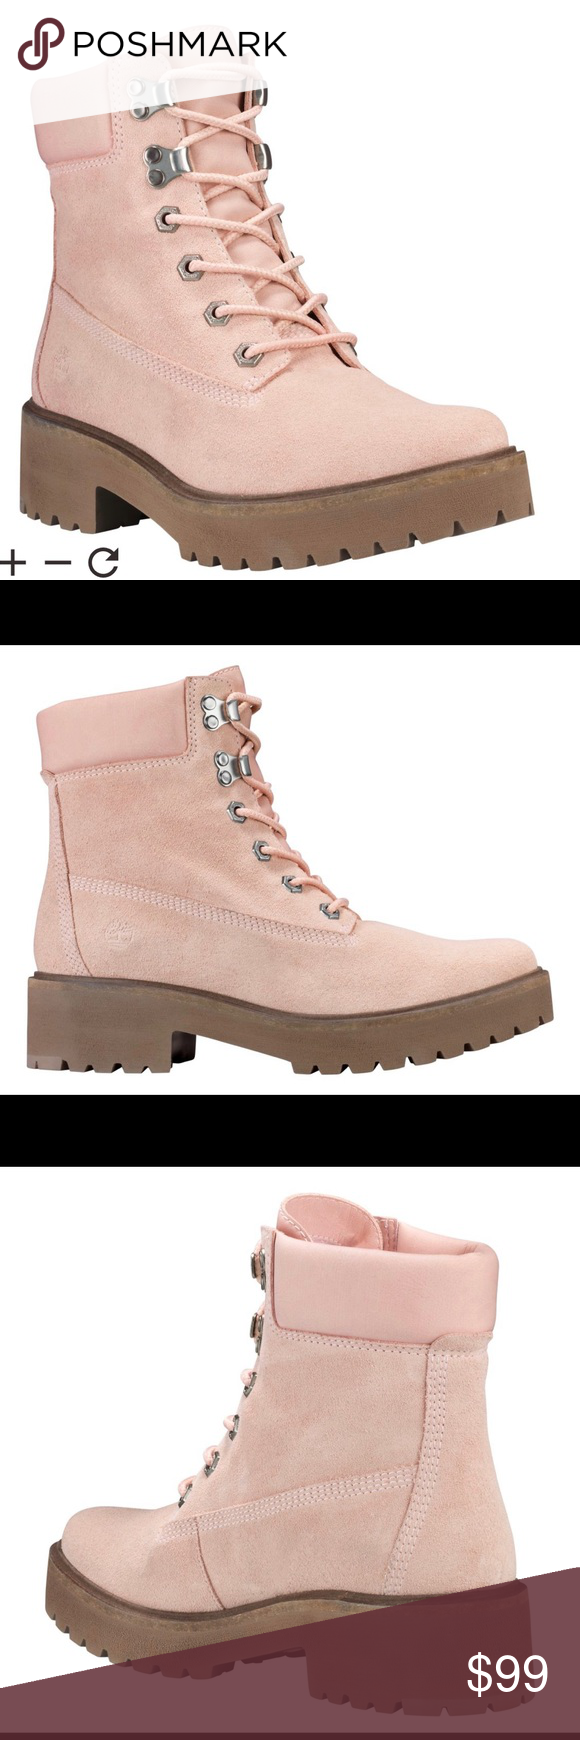 LIGHT PINK SUEDE WOMEN'S CARNABY COOL 6 INCH BOOTS Our